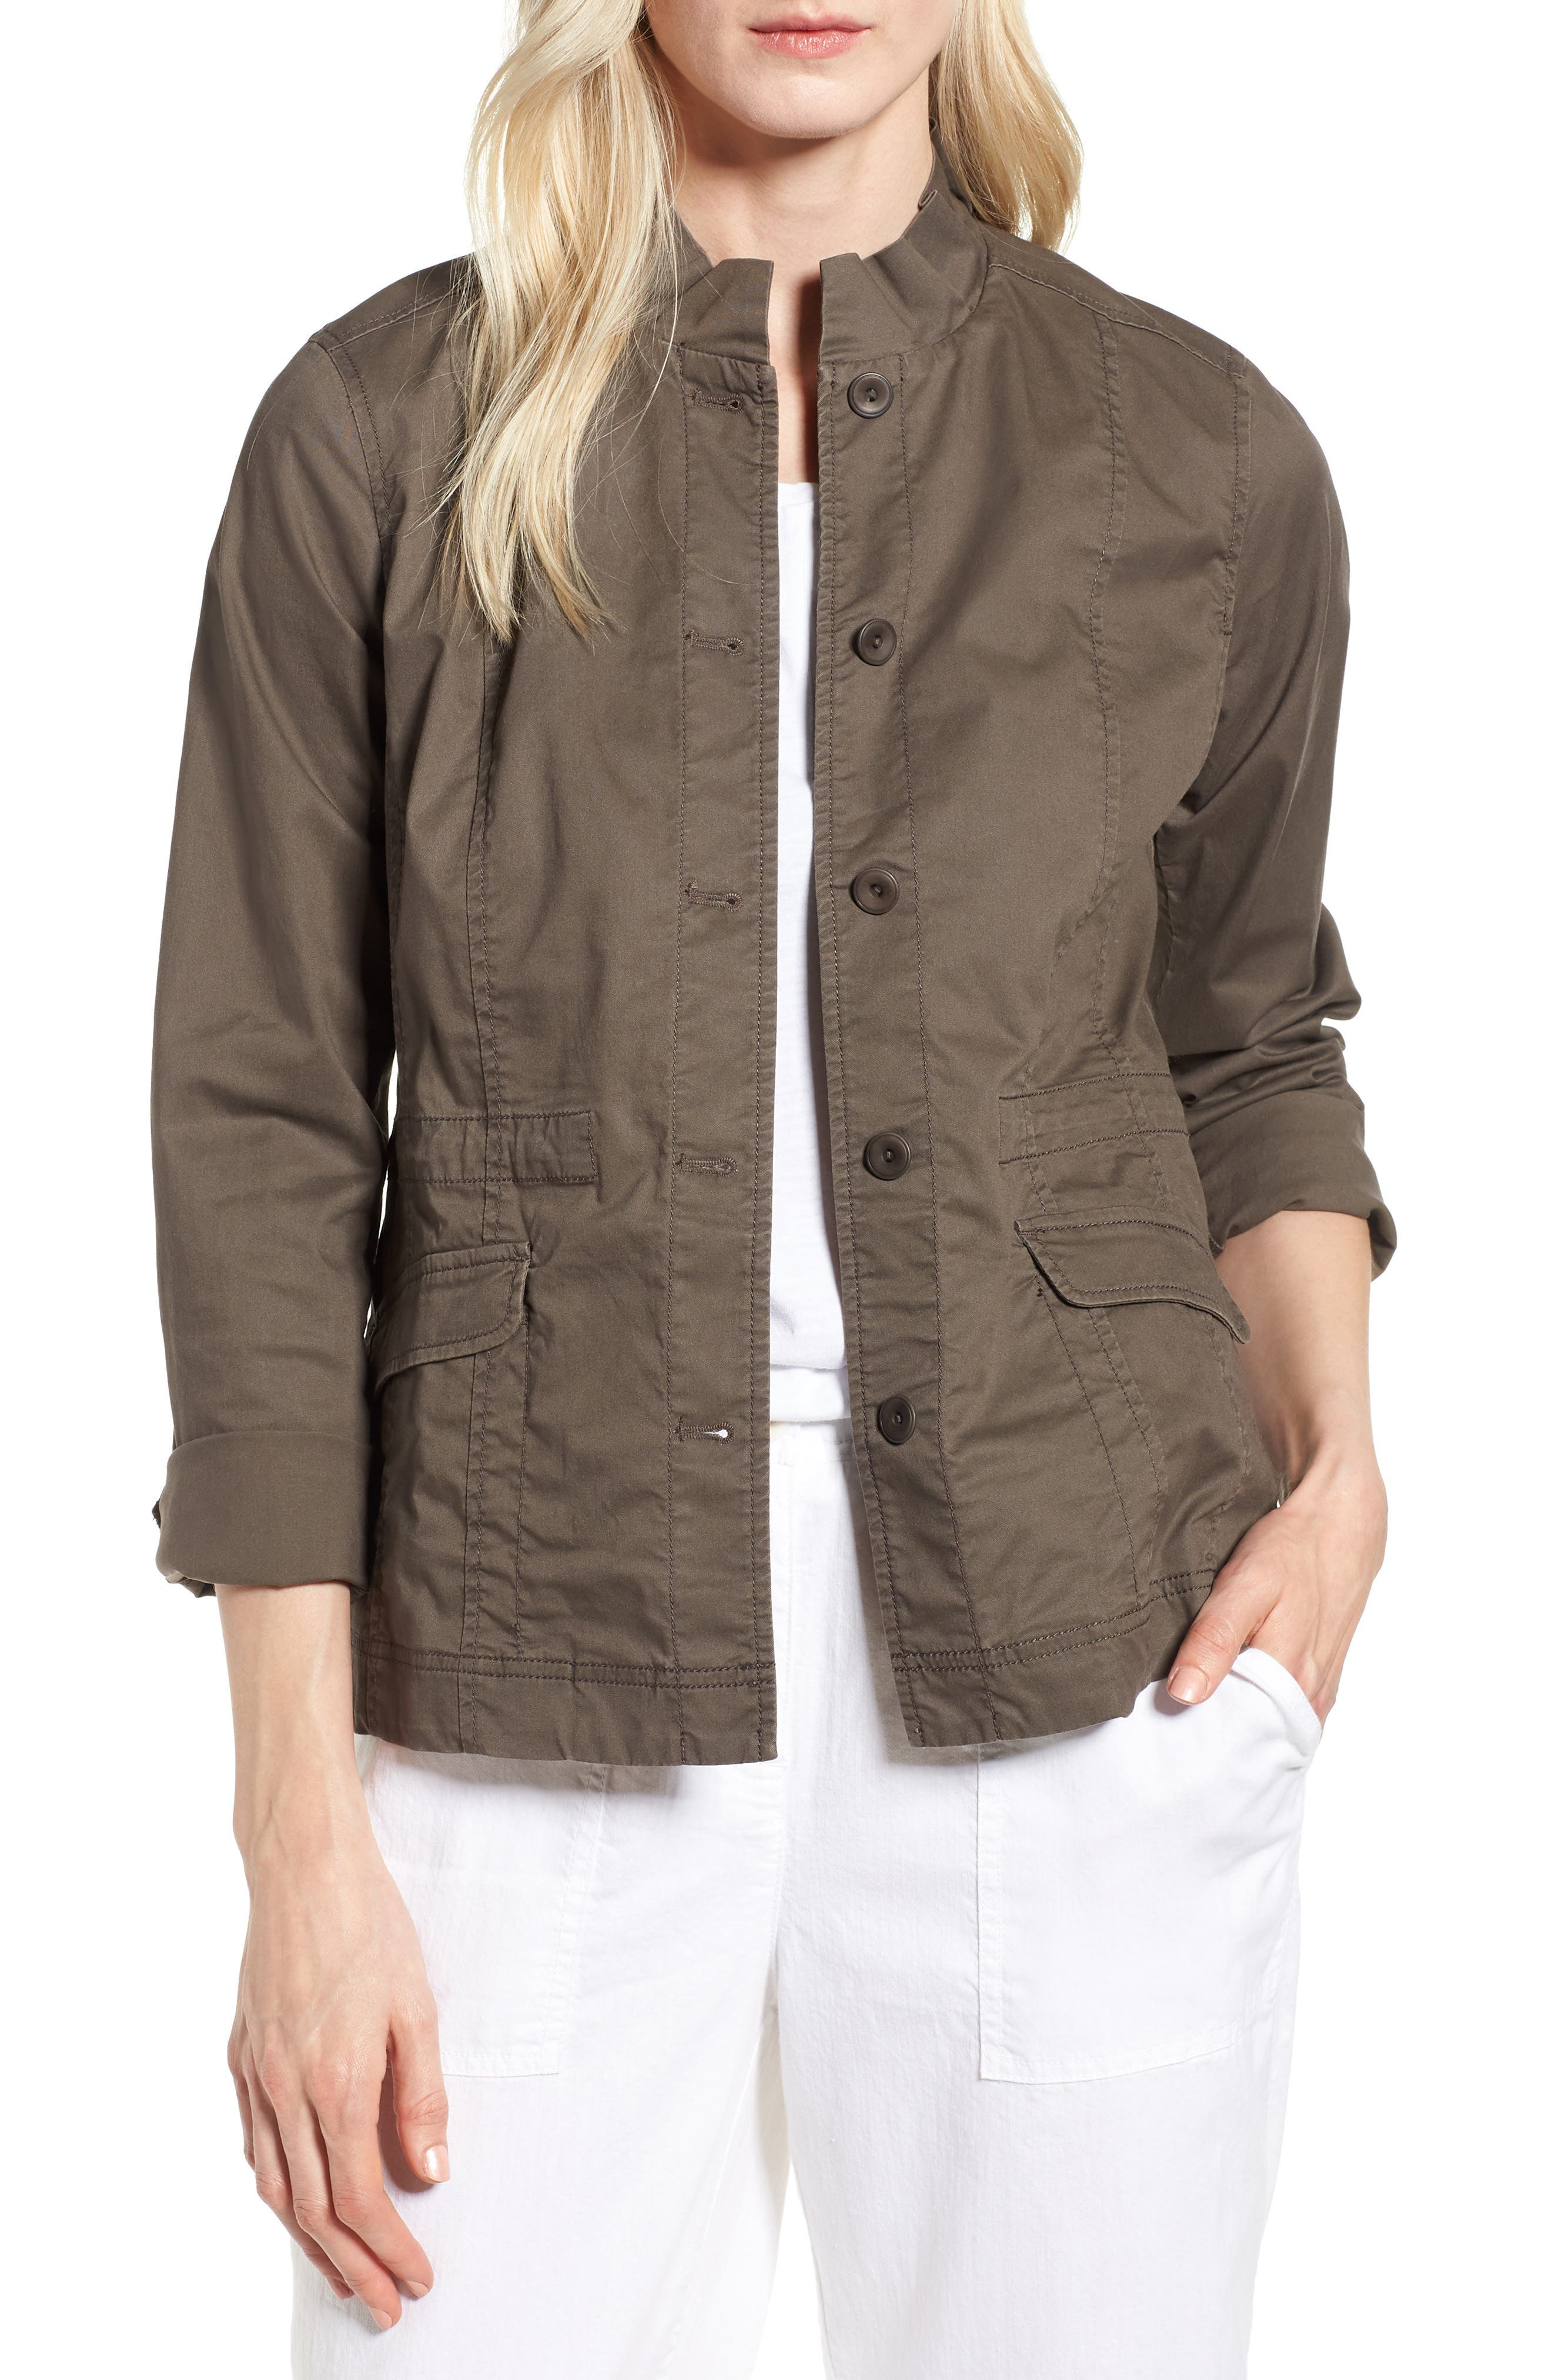 Ruffle Collar Organic Cotton Blend Jacket,                         Main,                         color, 245